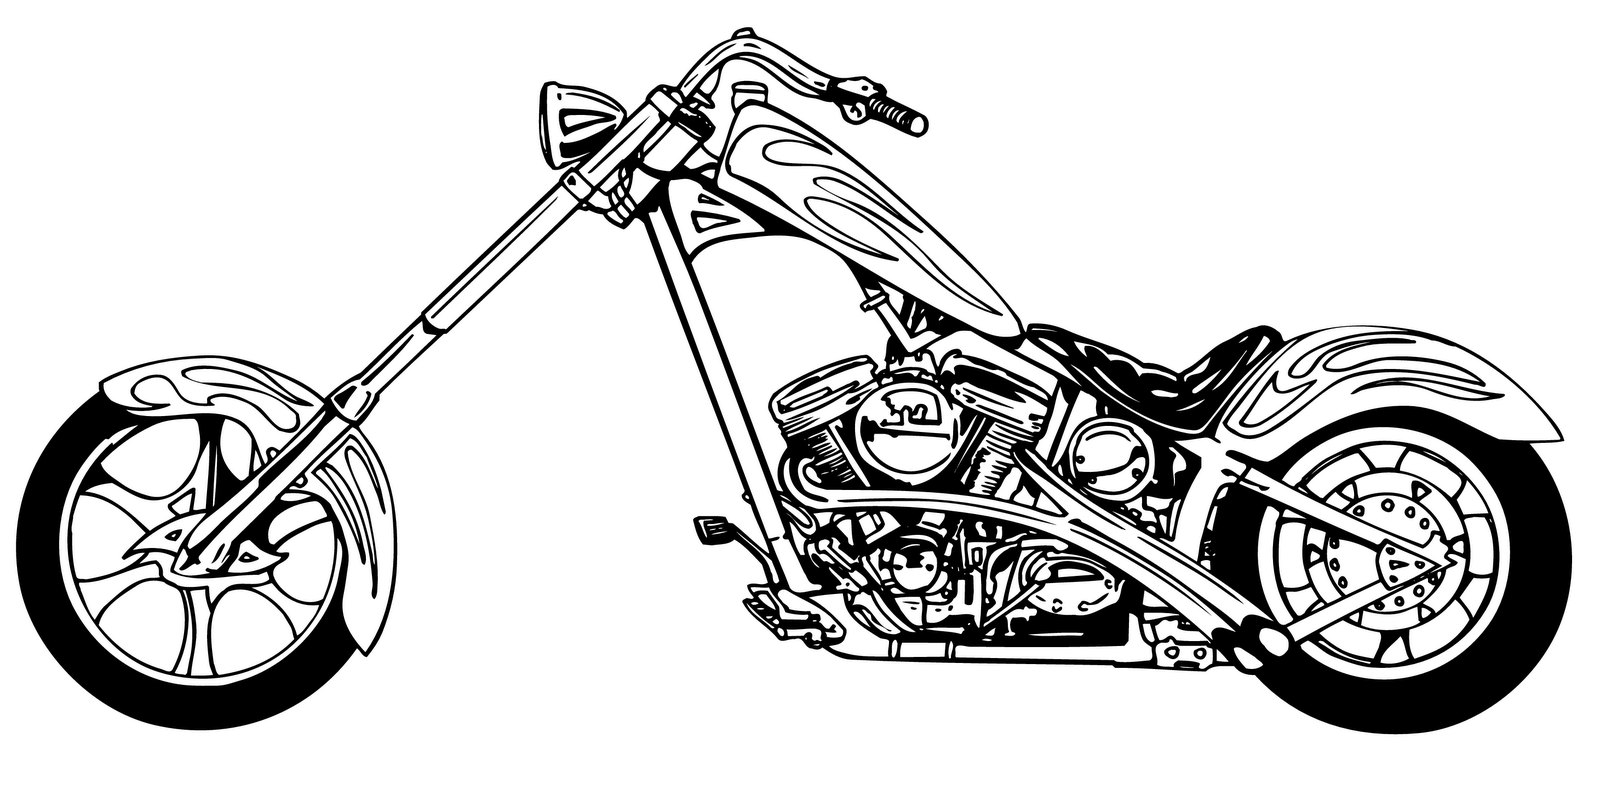 Harley clipart black and white svg free stock Harley clipart black and white - ClipartFest svg free stock